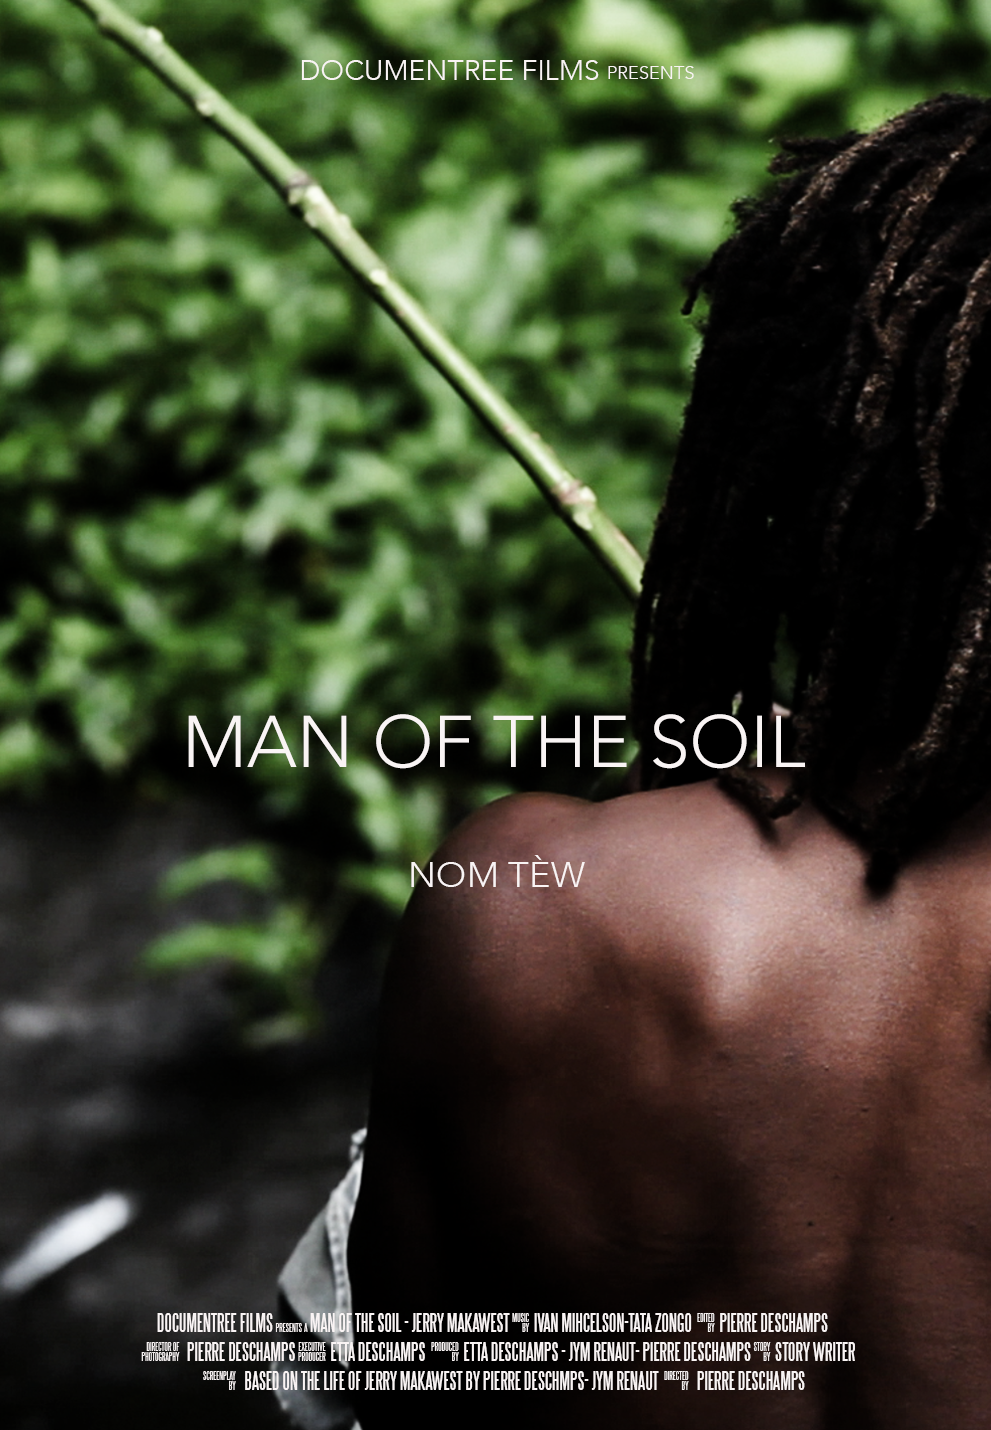 MAN OF THE SOIL